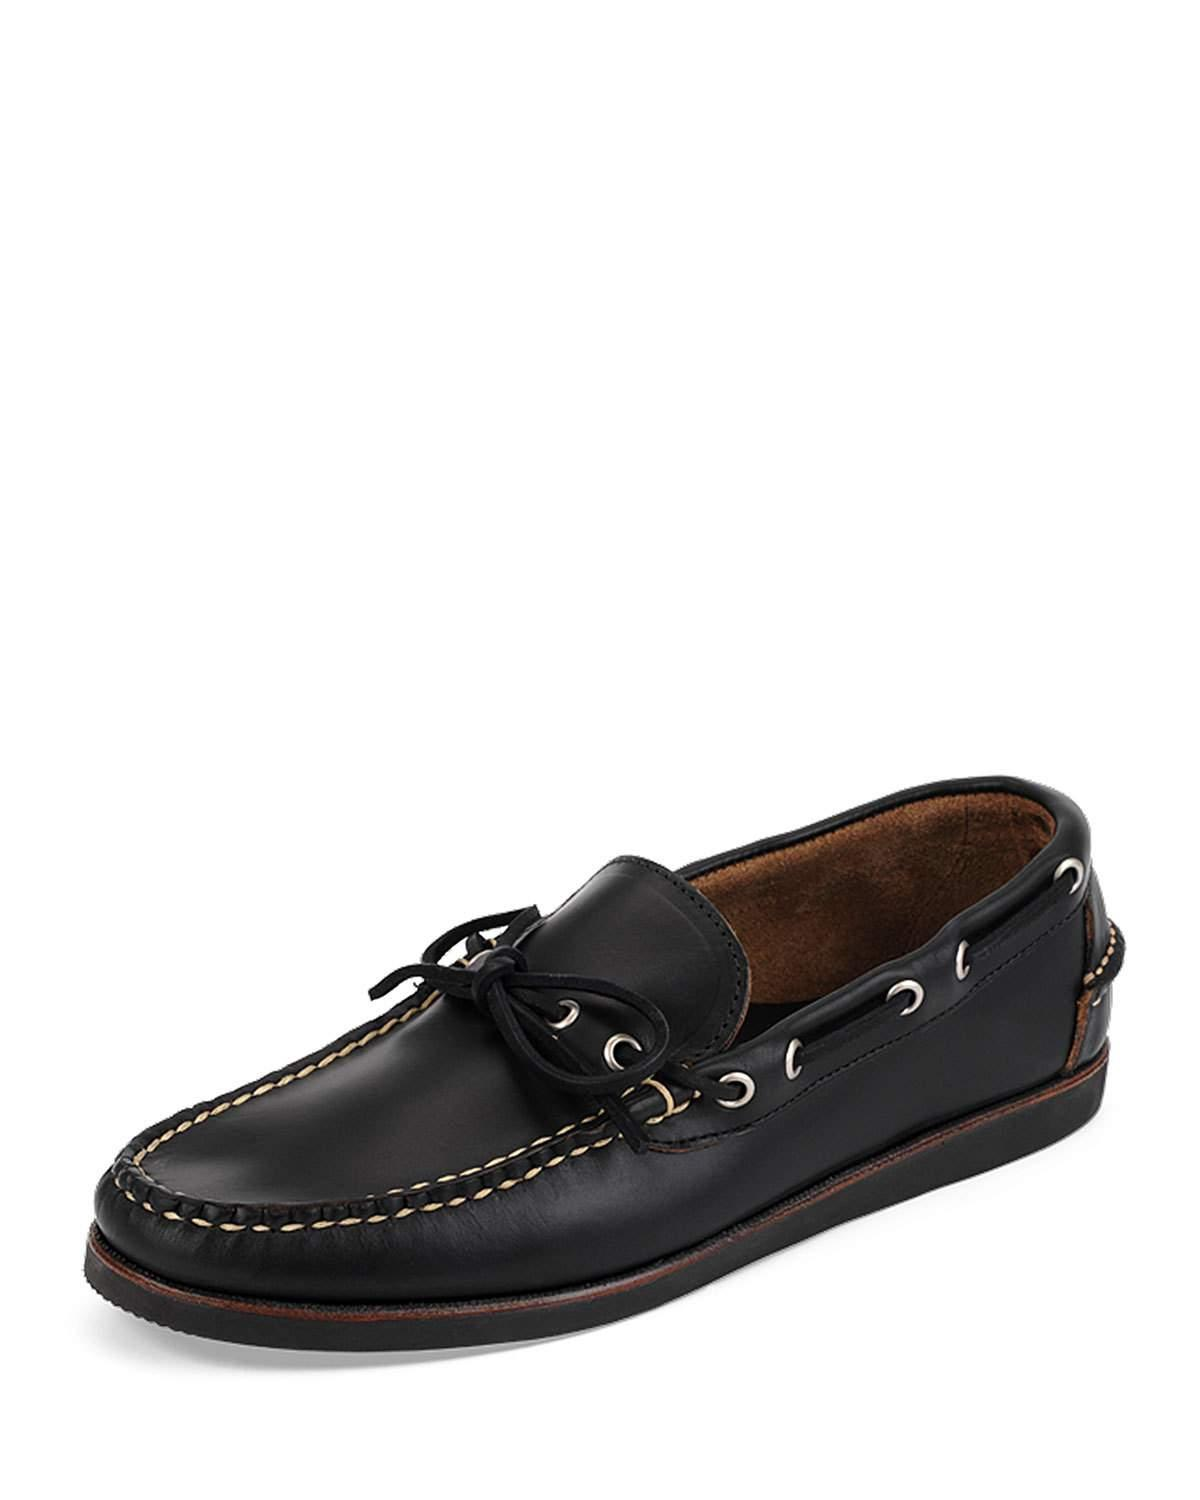 Eastland Leather Shoes